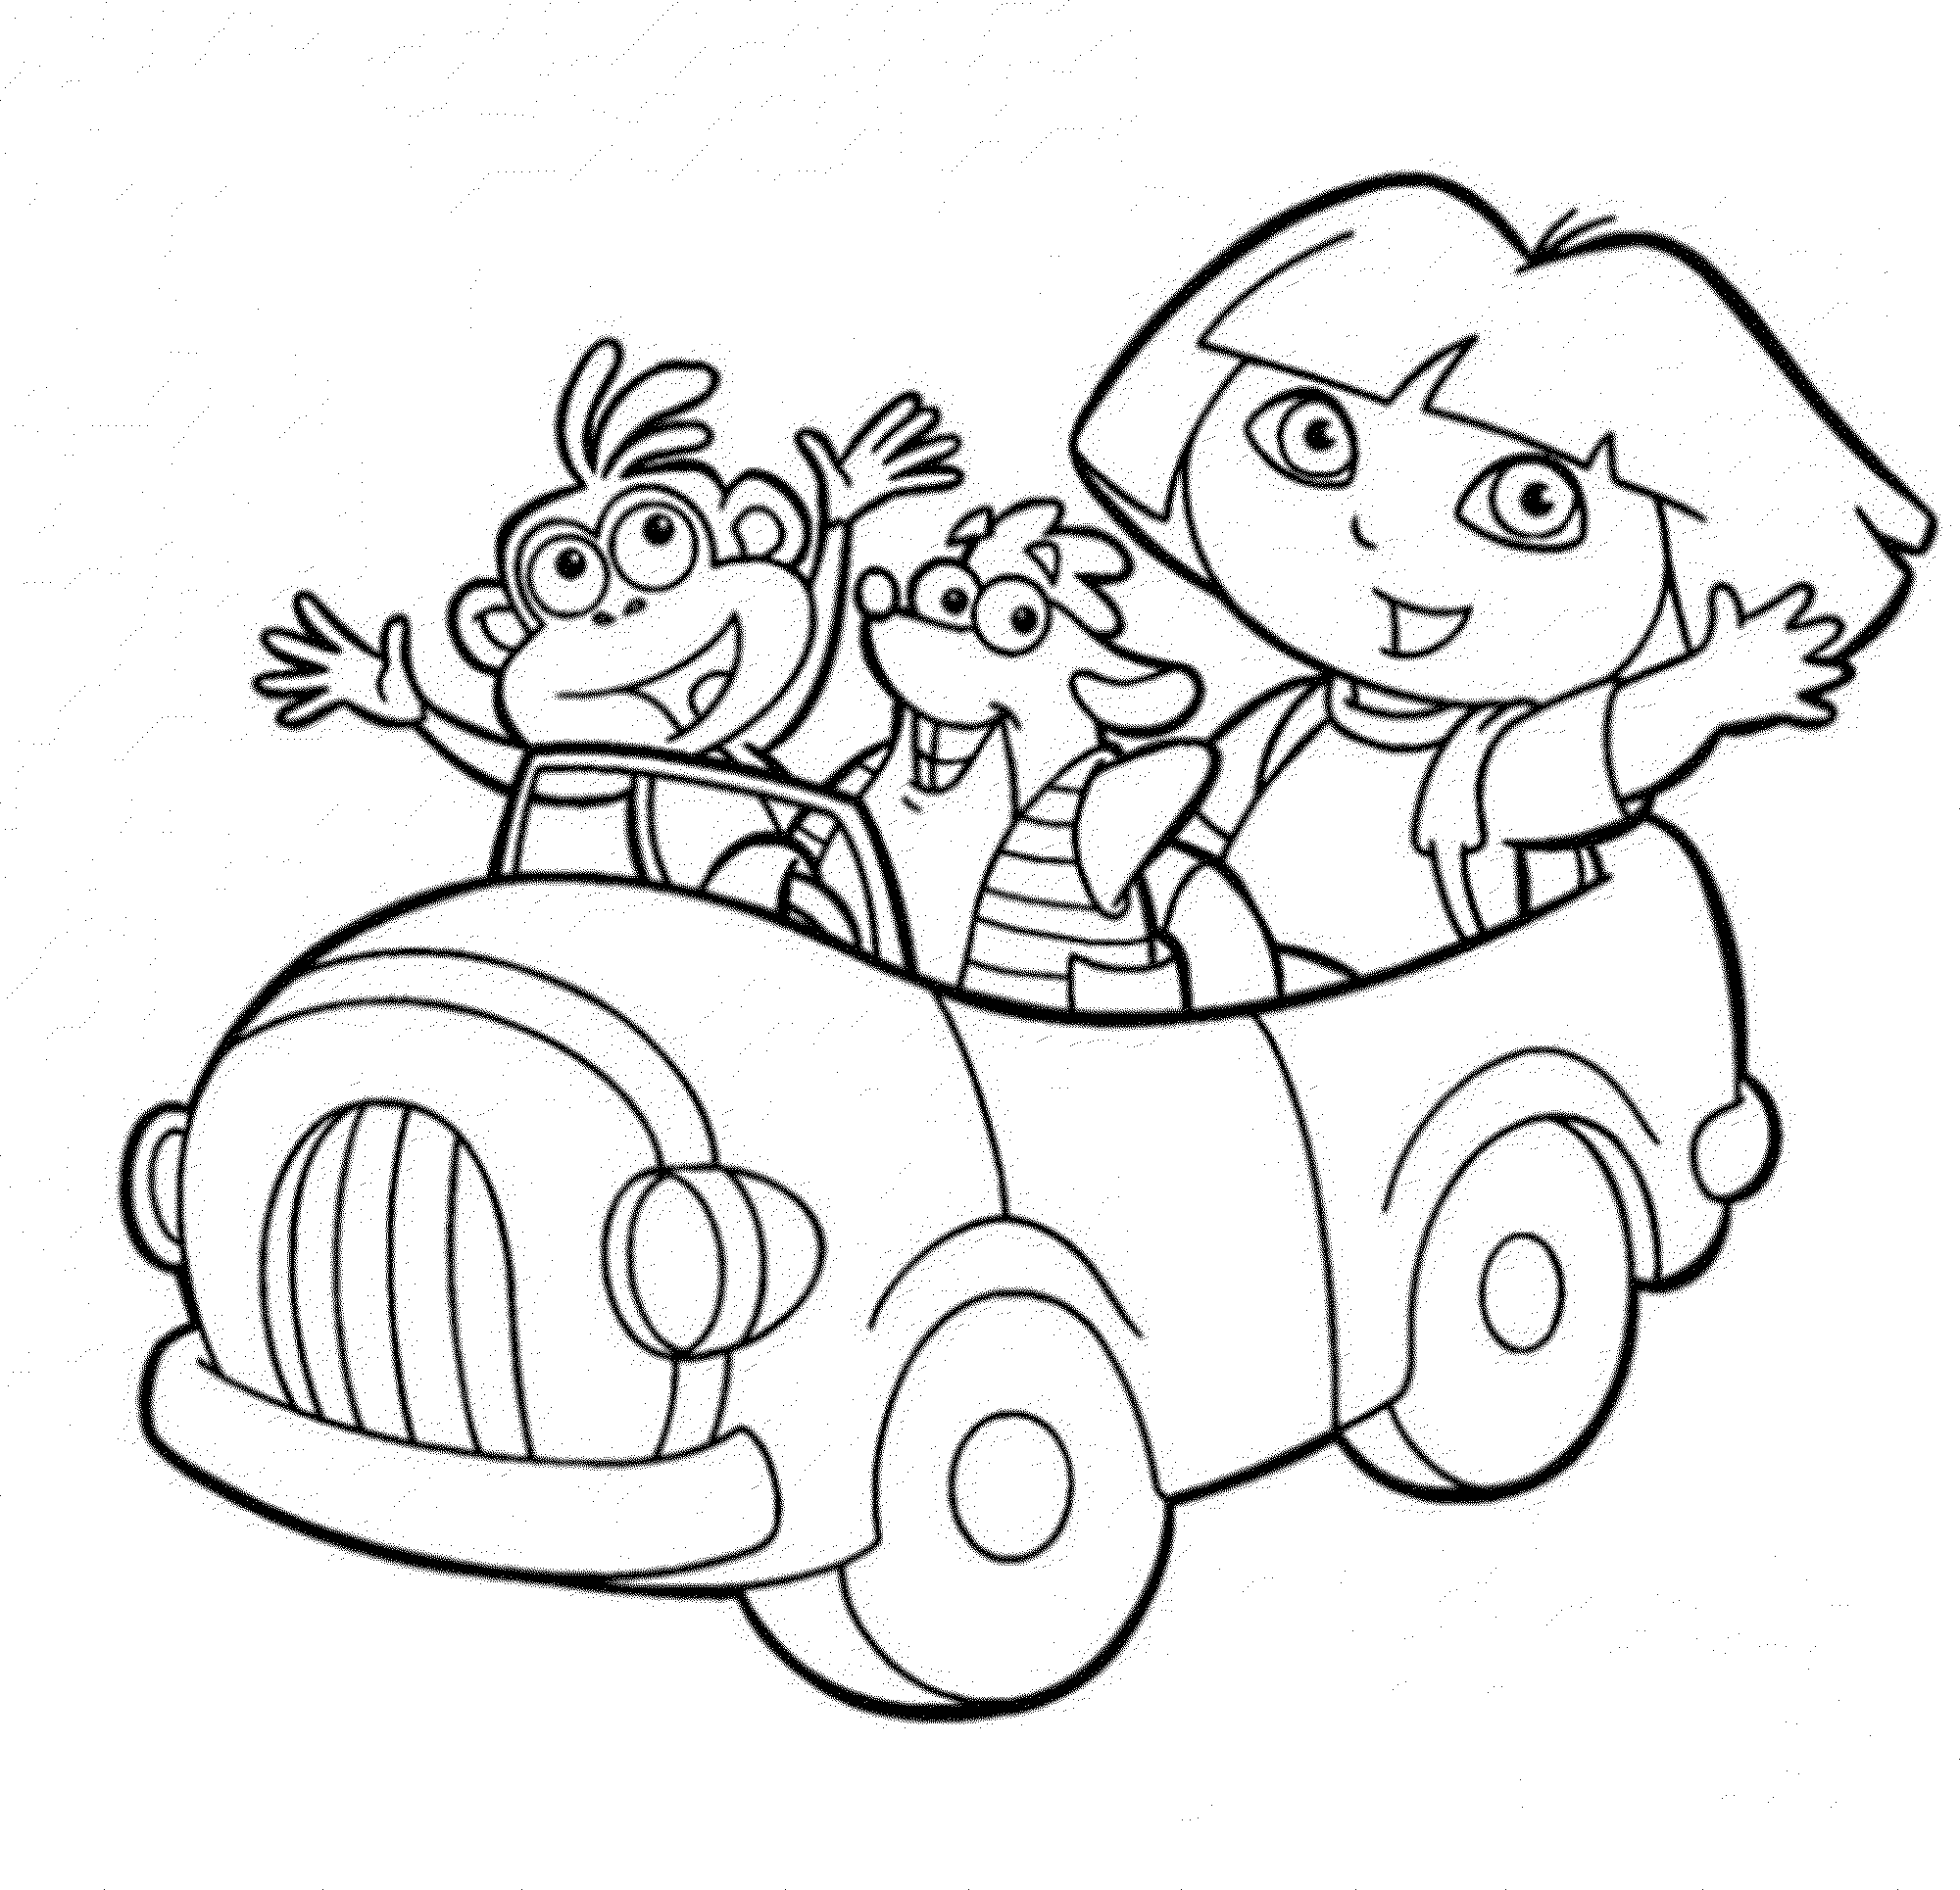 dora coloring dora colouring pictures coloring pages to print coloring dora